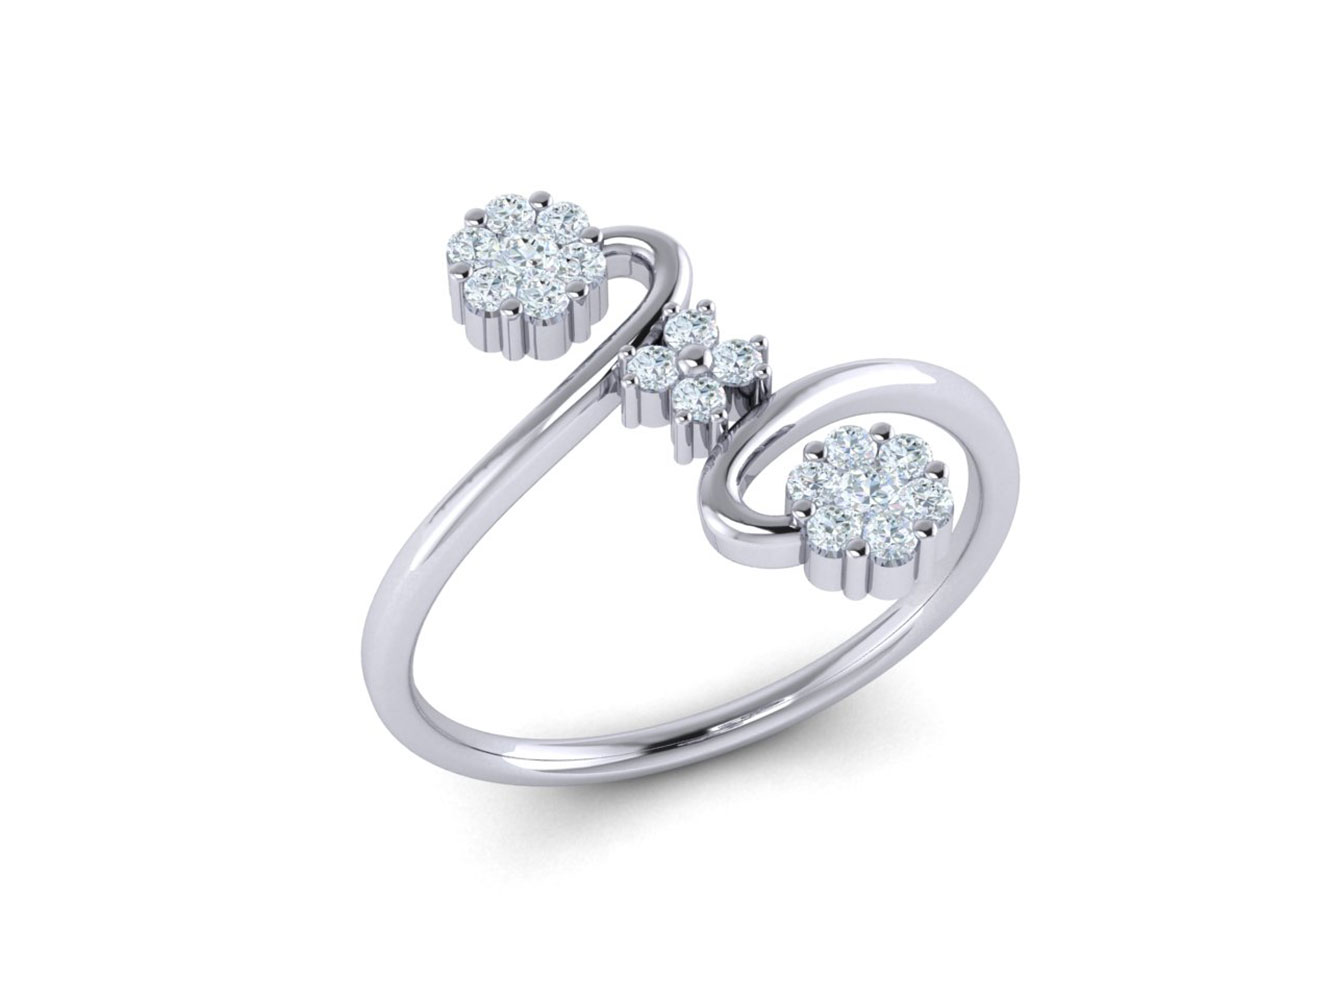 721d753ae0a9c Details about Genuine 0.3ctw Round Cut Diamond Fancy Forever Us Engagement  Ring 18K Gold G SI1